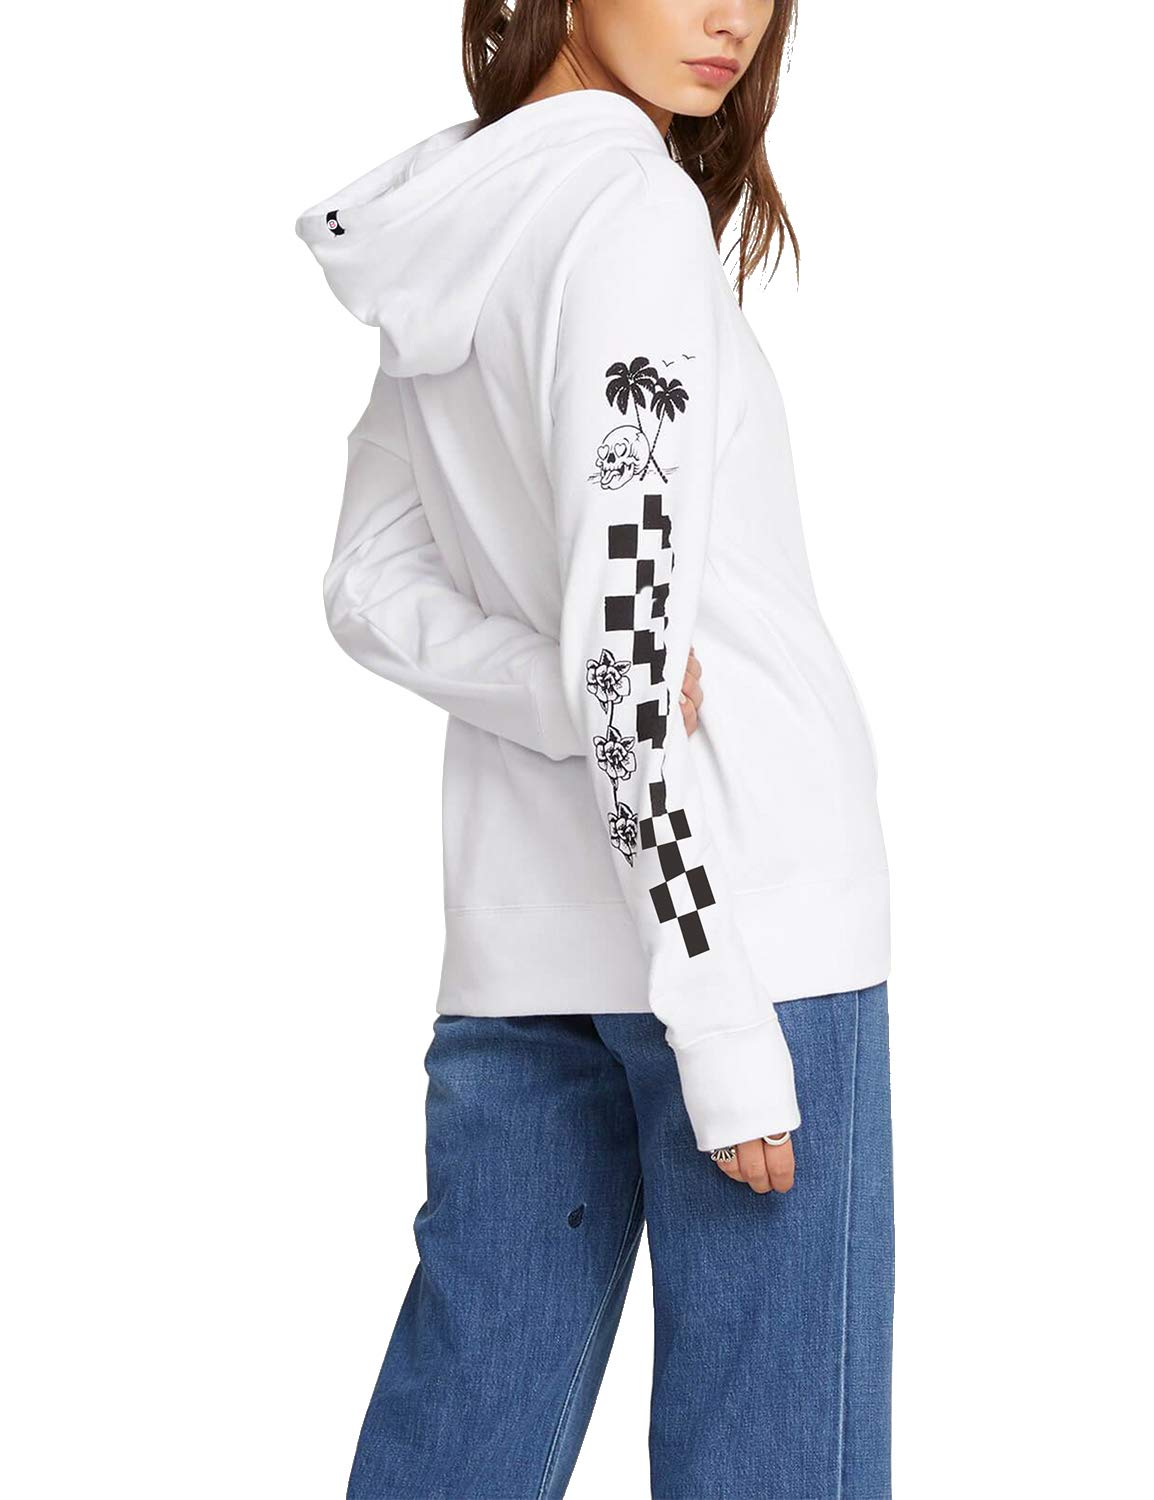 Blooming Jelly Women's Pineapple Letter Print Long Sleeve Pullover Hoodie White